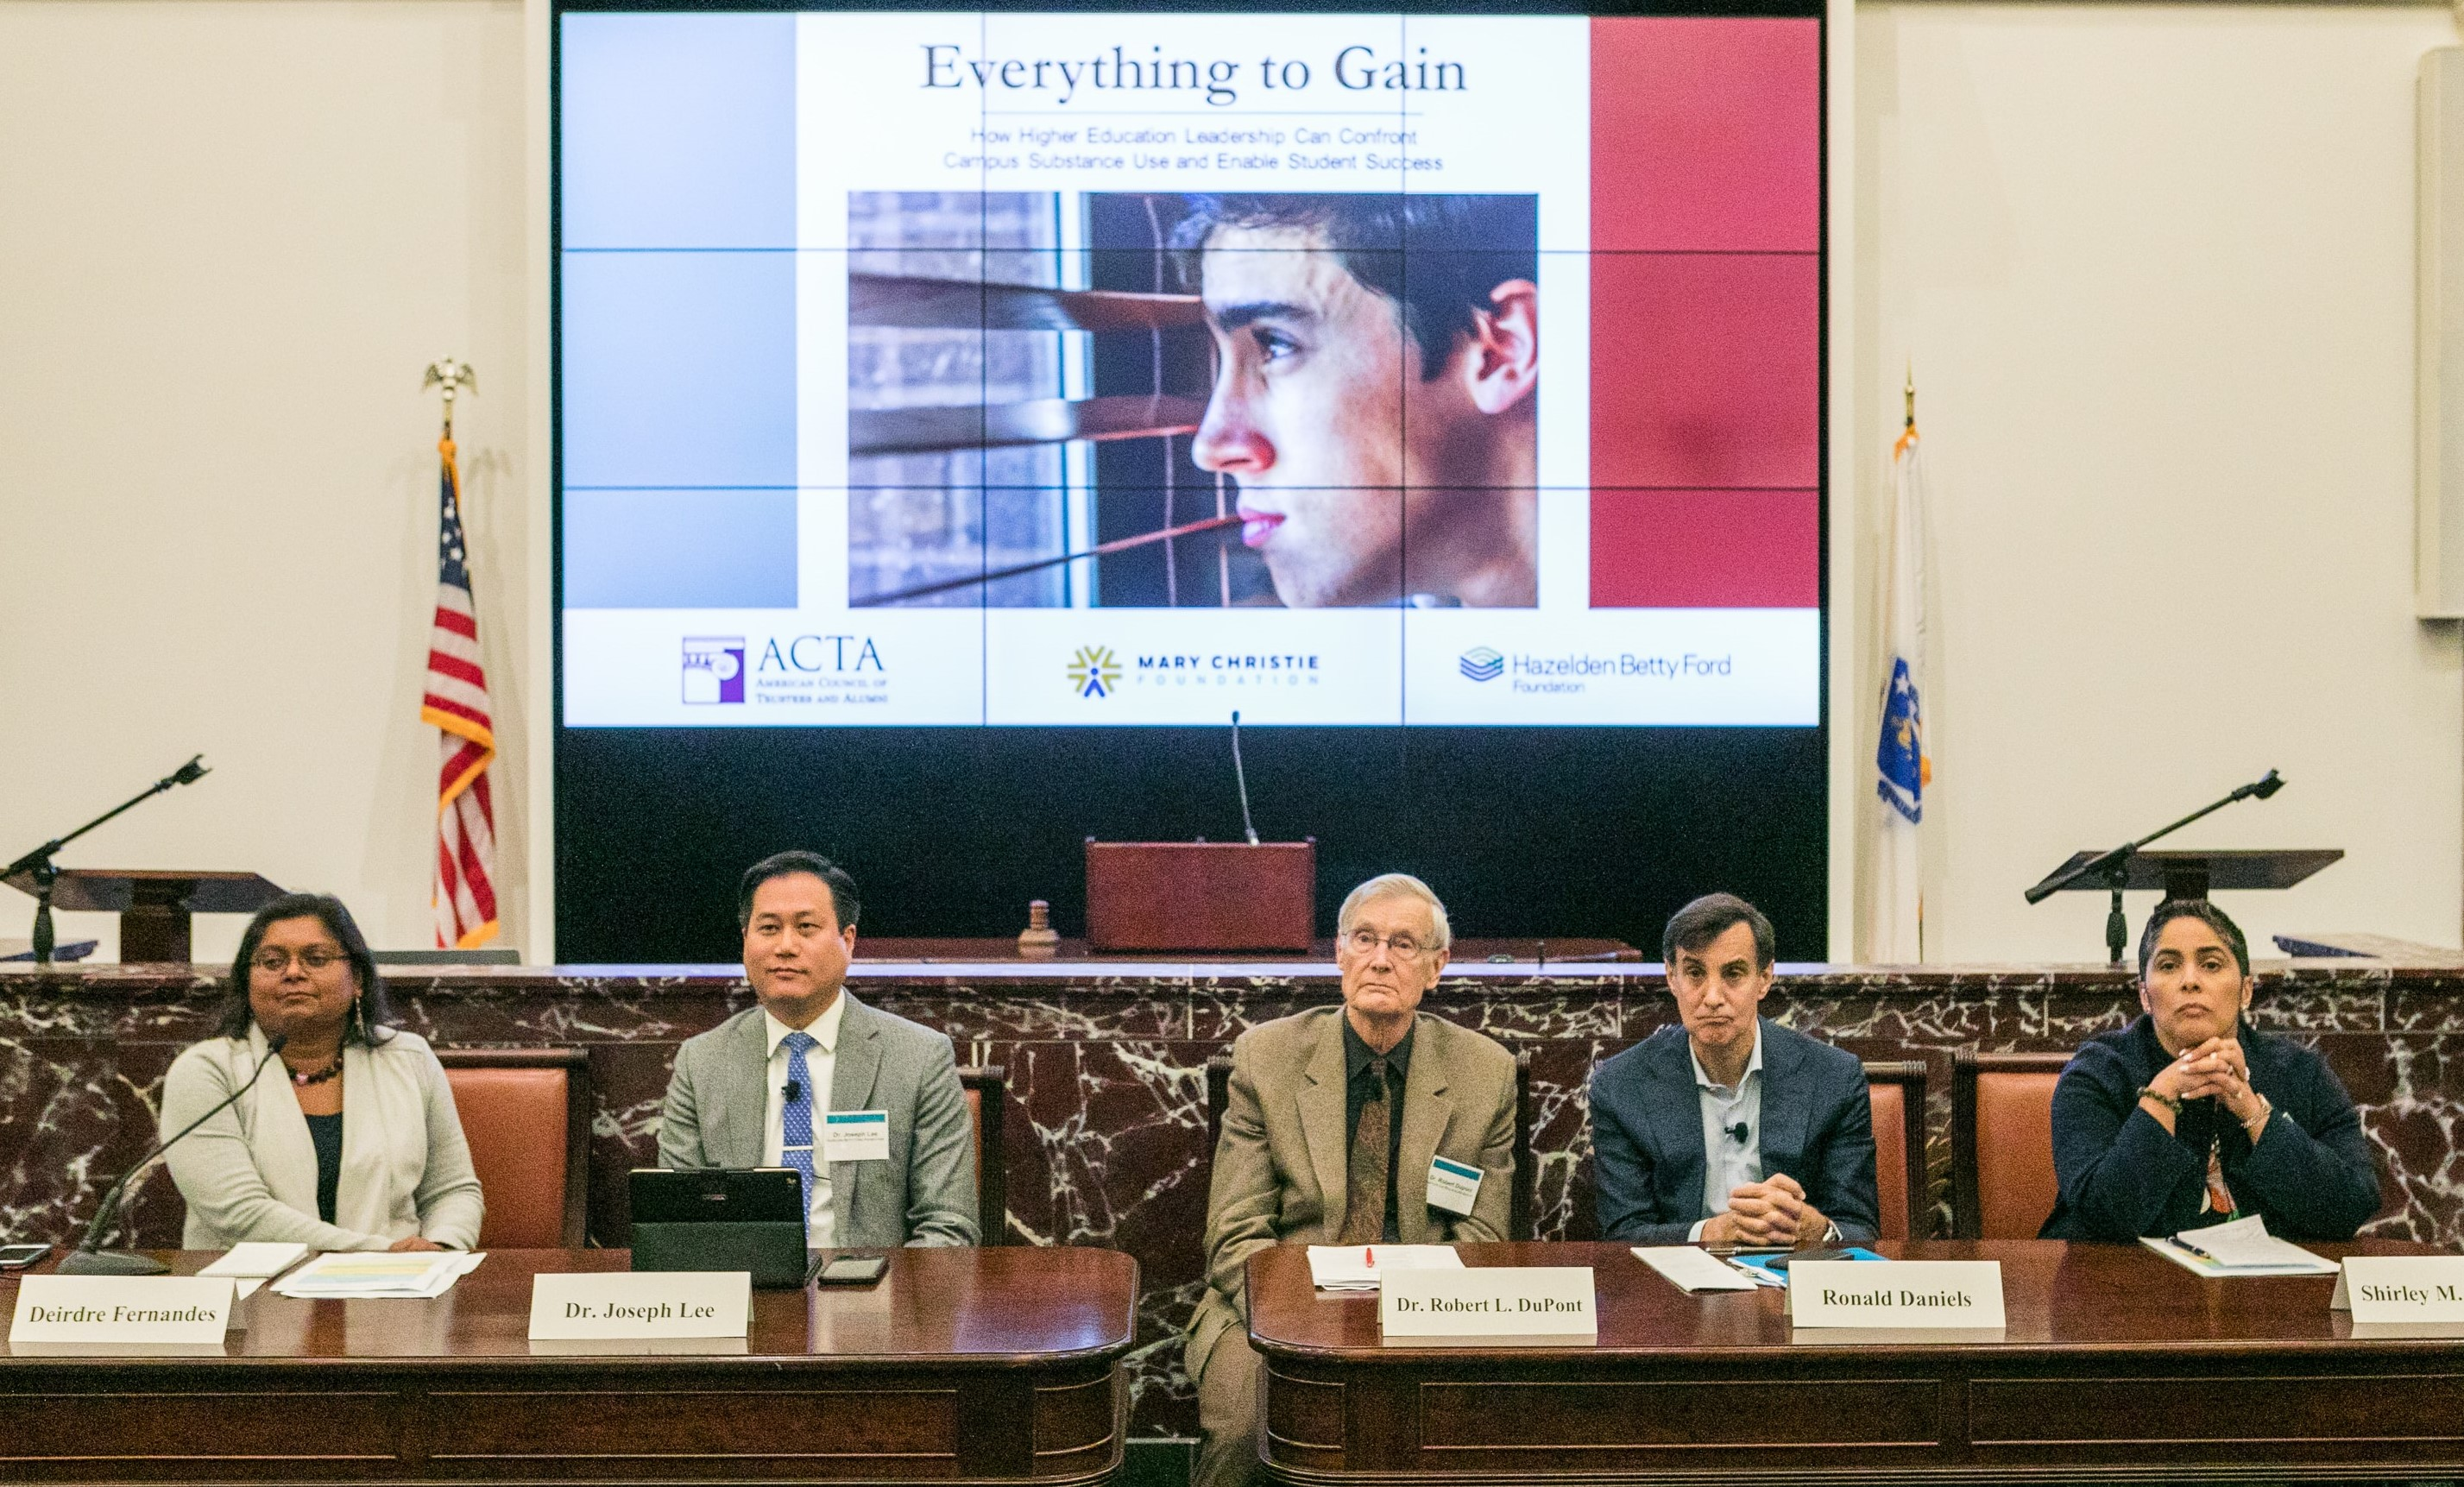 The morning panel at Everything to Gain, ACTA's conference on college drinking and drug use